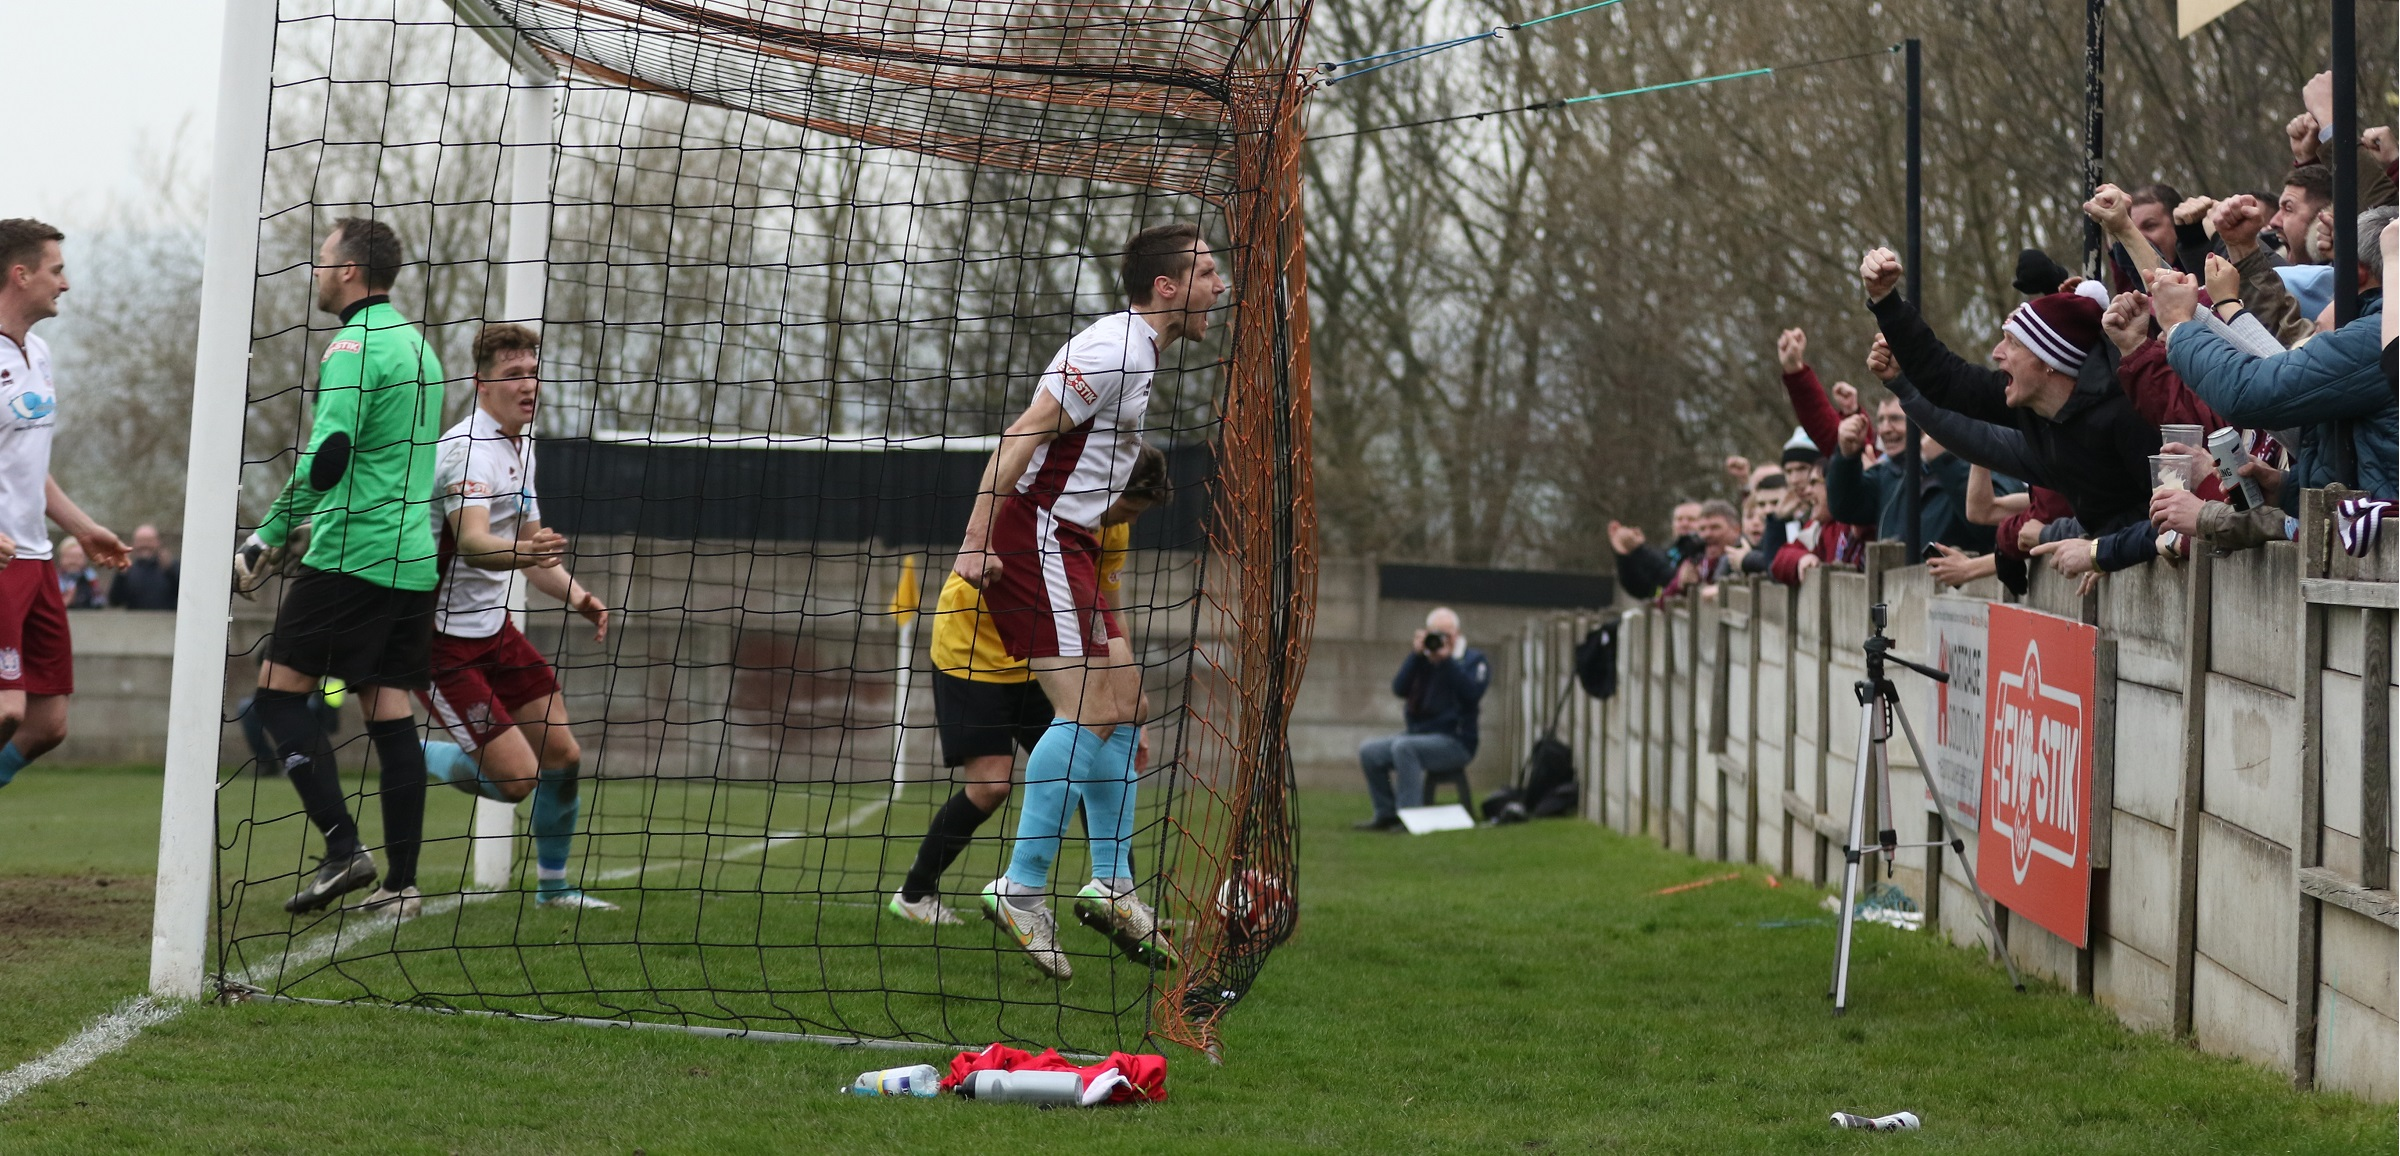 Ossett Albion 2-2 South Shields: Mariners come from two down